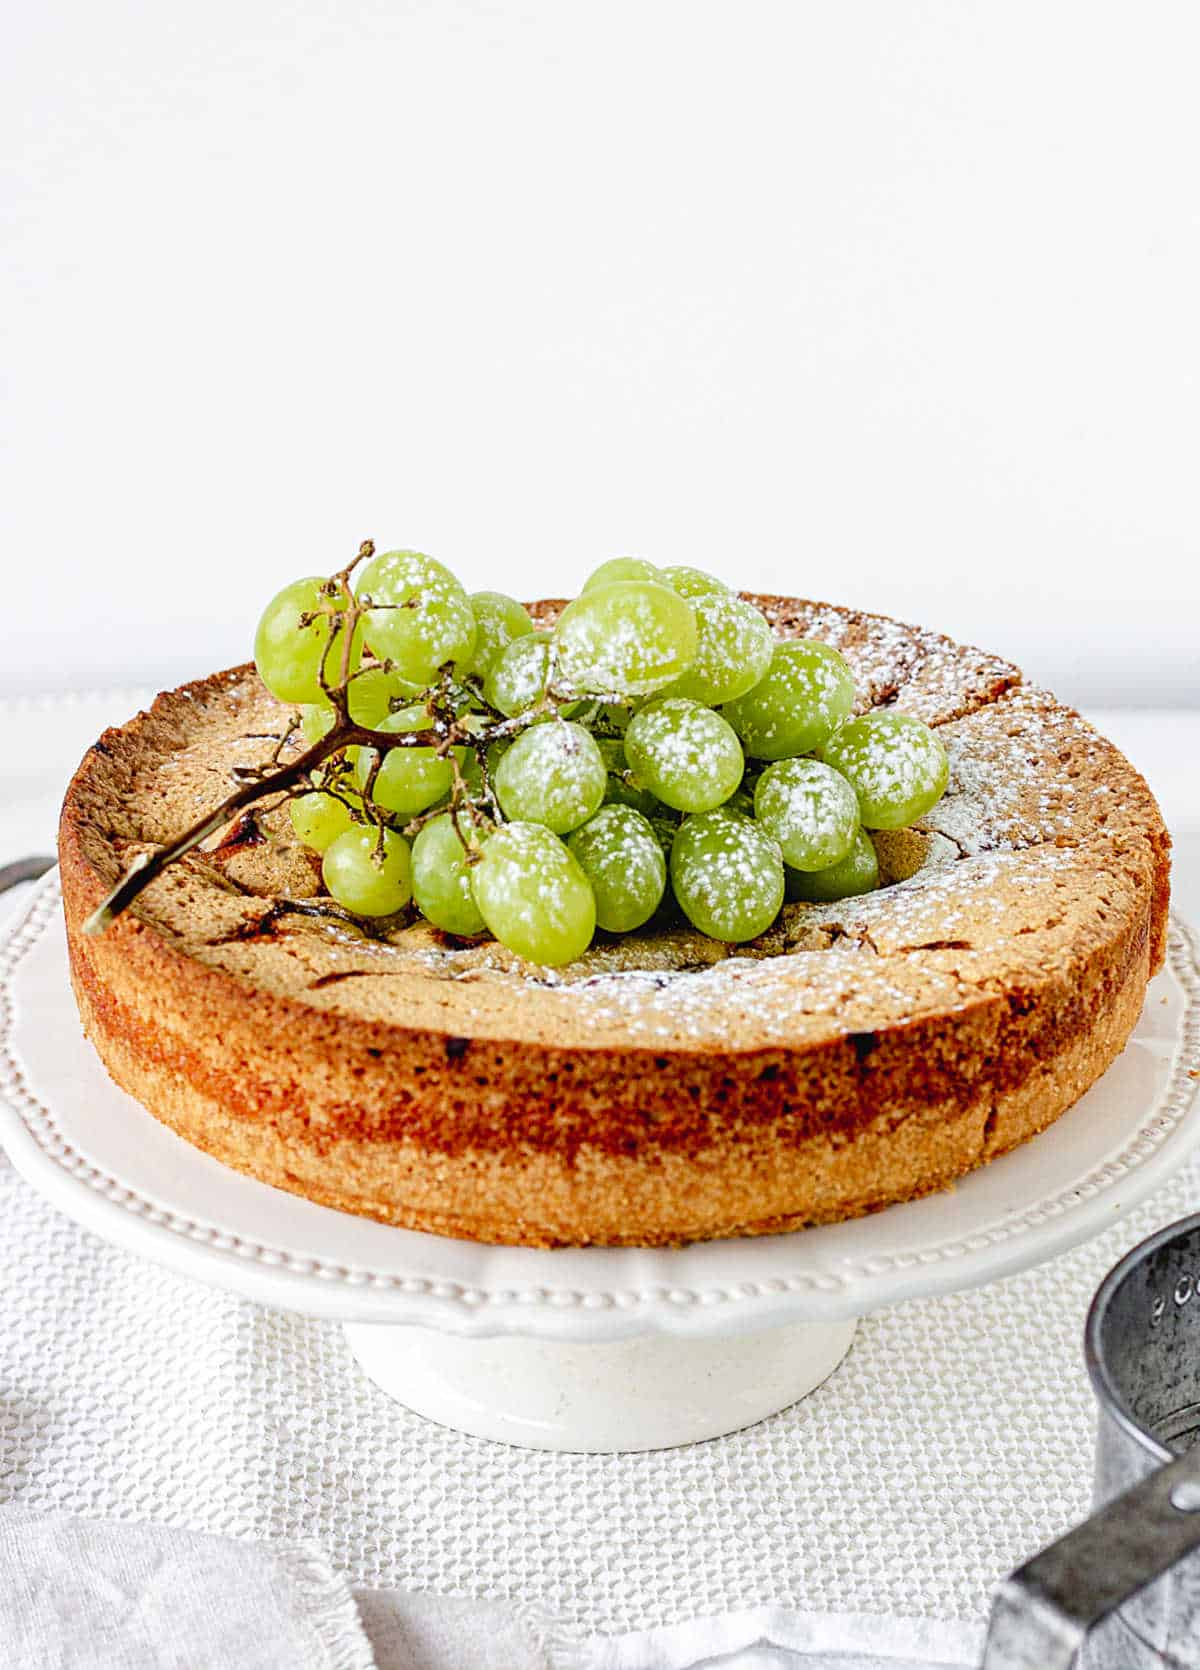 Bunch of green grapes on top of cake in white cake stand; white background